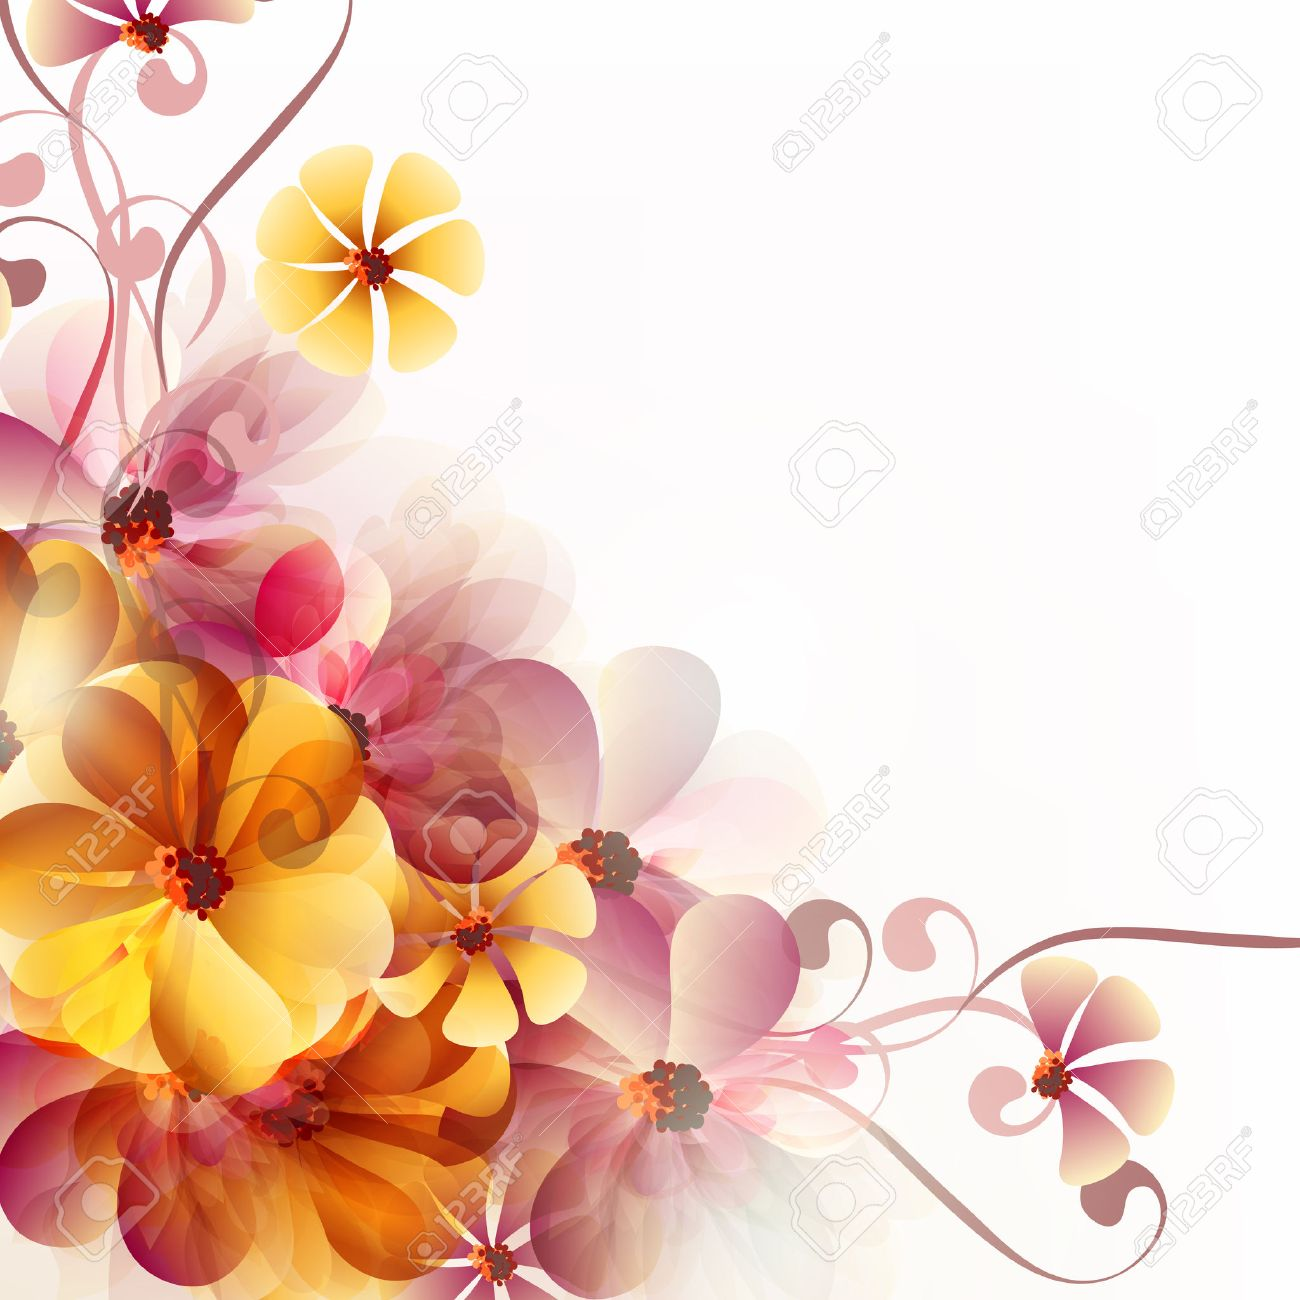 Abstract floral vector background with pink and orange flowers abstract floral vector background with pink and orange flowers for backgrounds or templates designs stock vector mightylinksfo